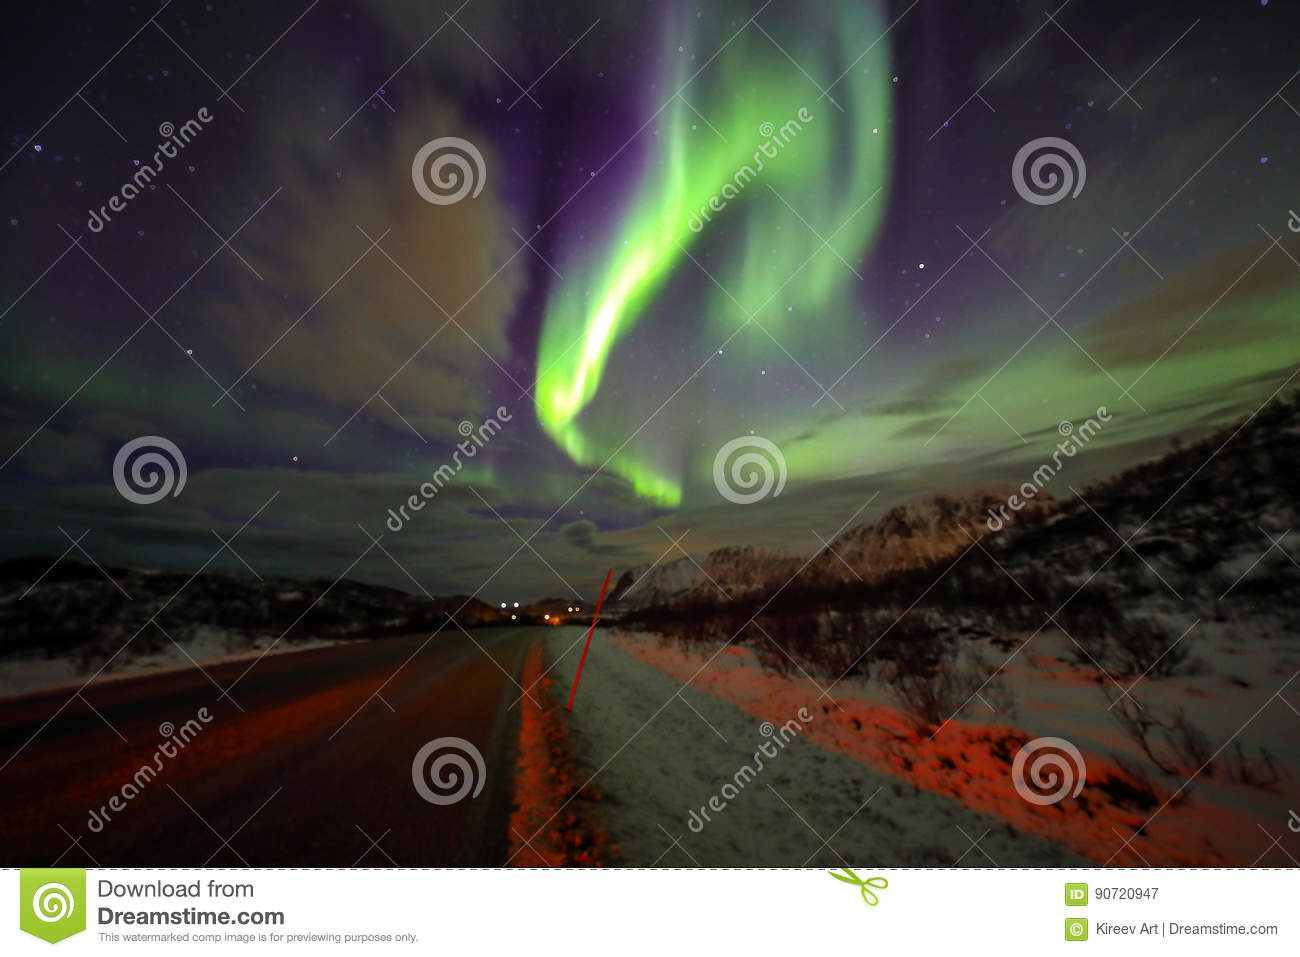 Amazing multicolored Aurora Borealis also know as Northern Lights in the night sky over Lofoten landscape, Norway, Scandinavia. Bl